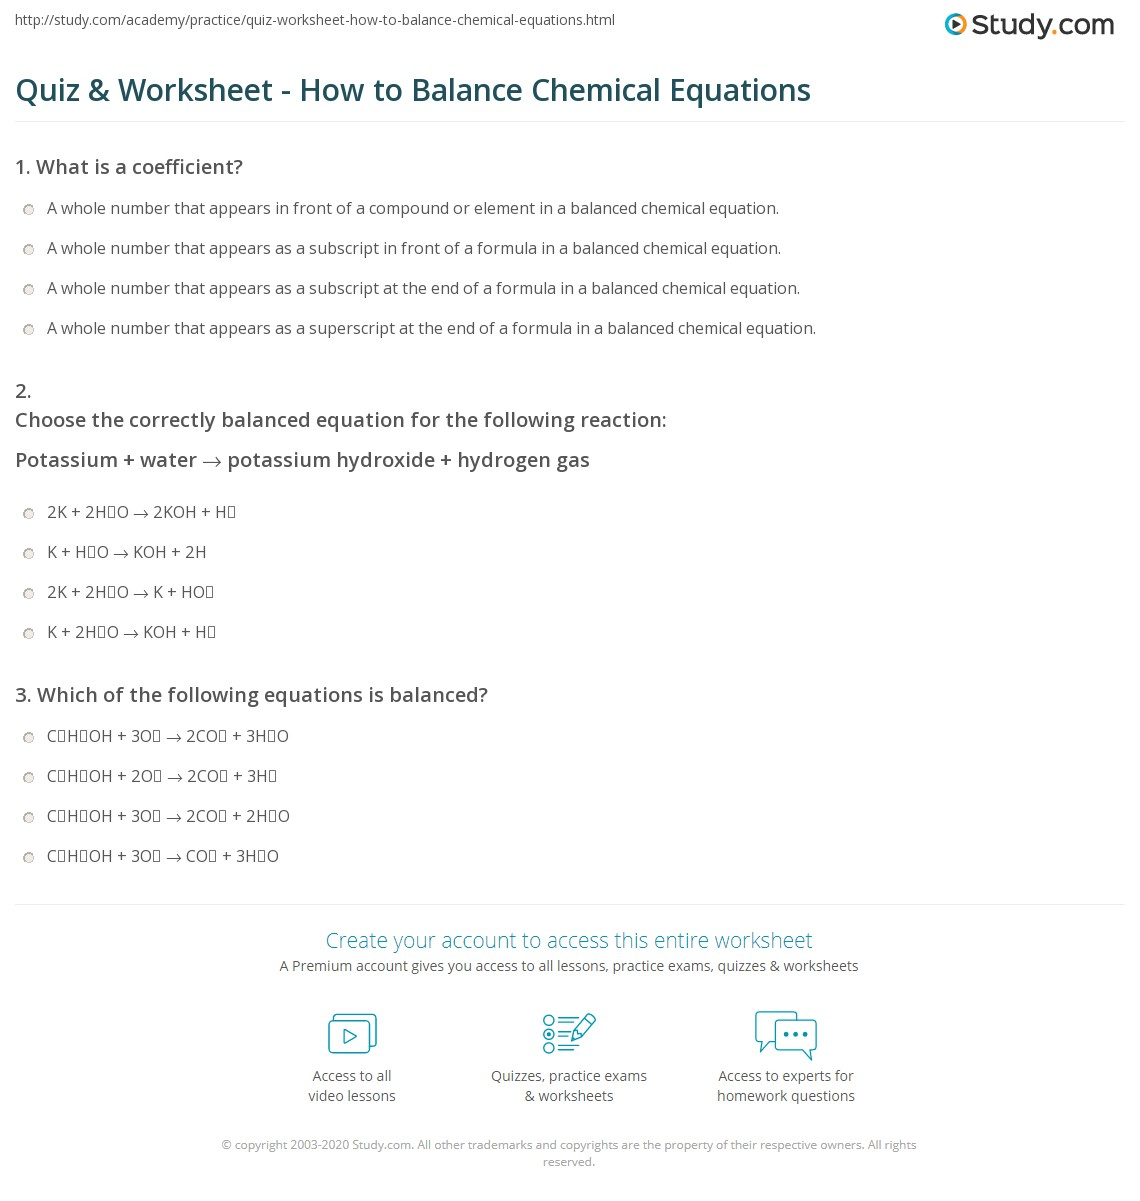 Quiz Worksheet How to Balance Chemical Equations – Balancing Chemical Equations Worksheet 3